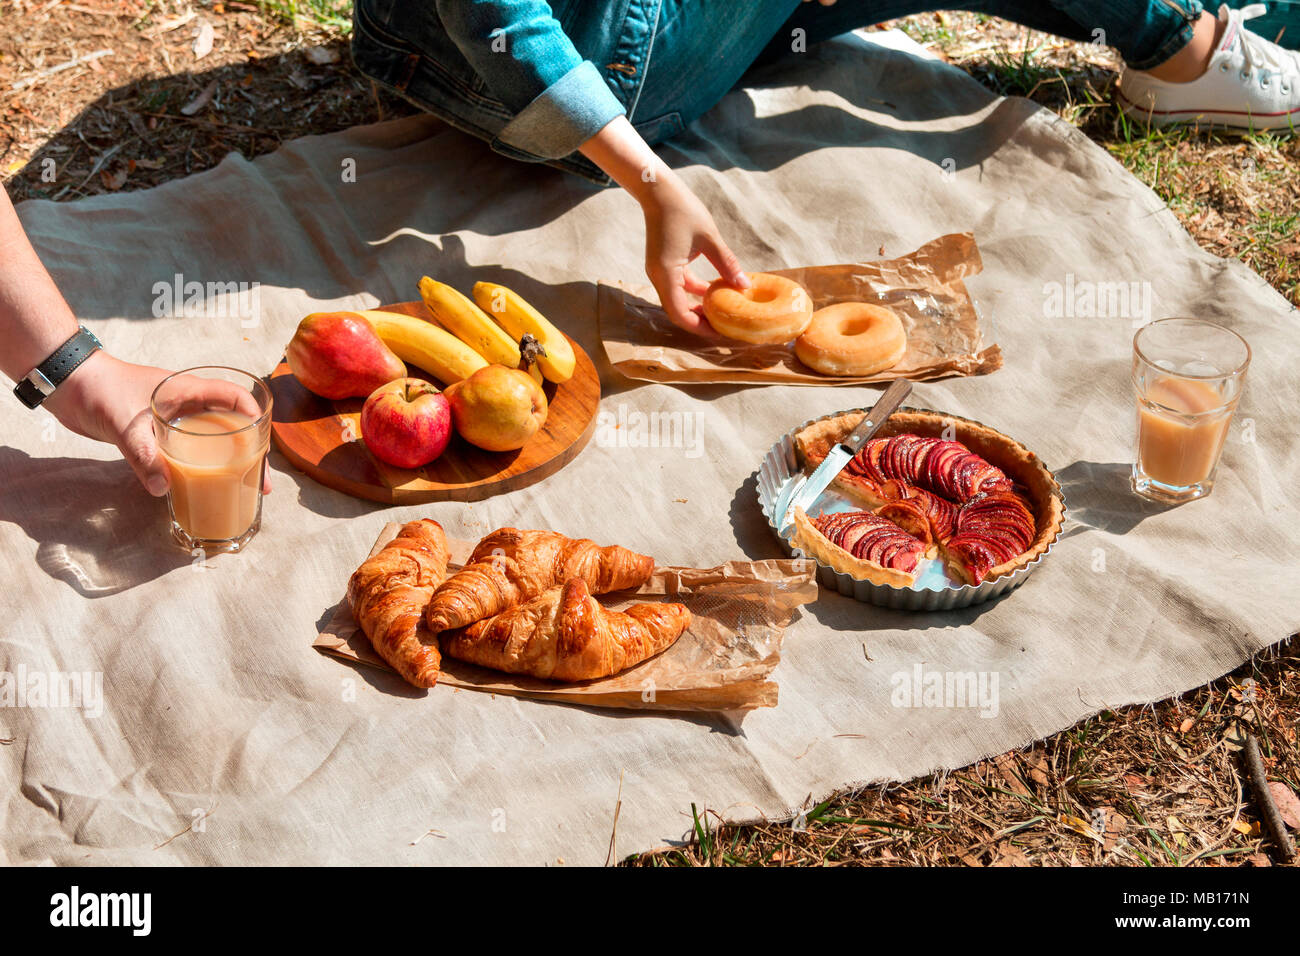 Couple enjoying picnic in the park - Stock Image